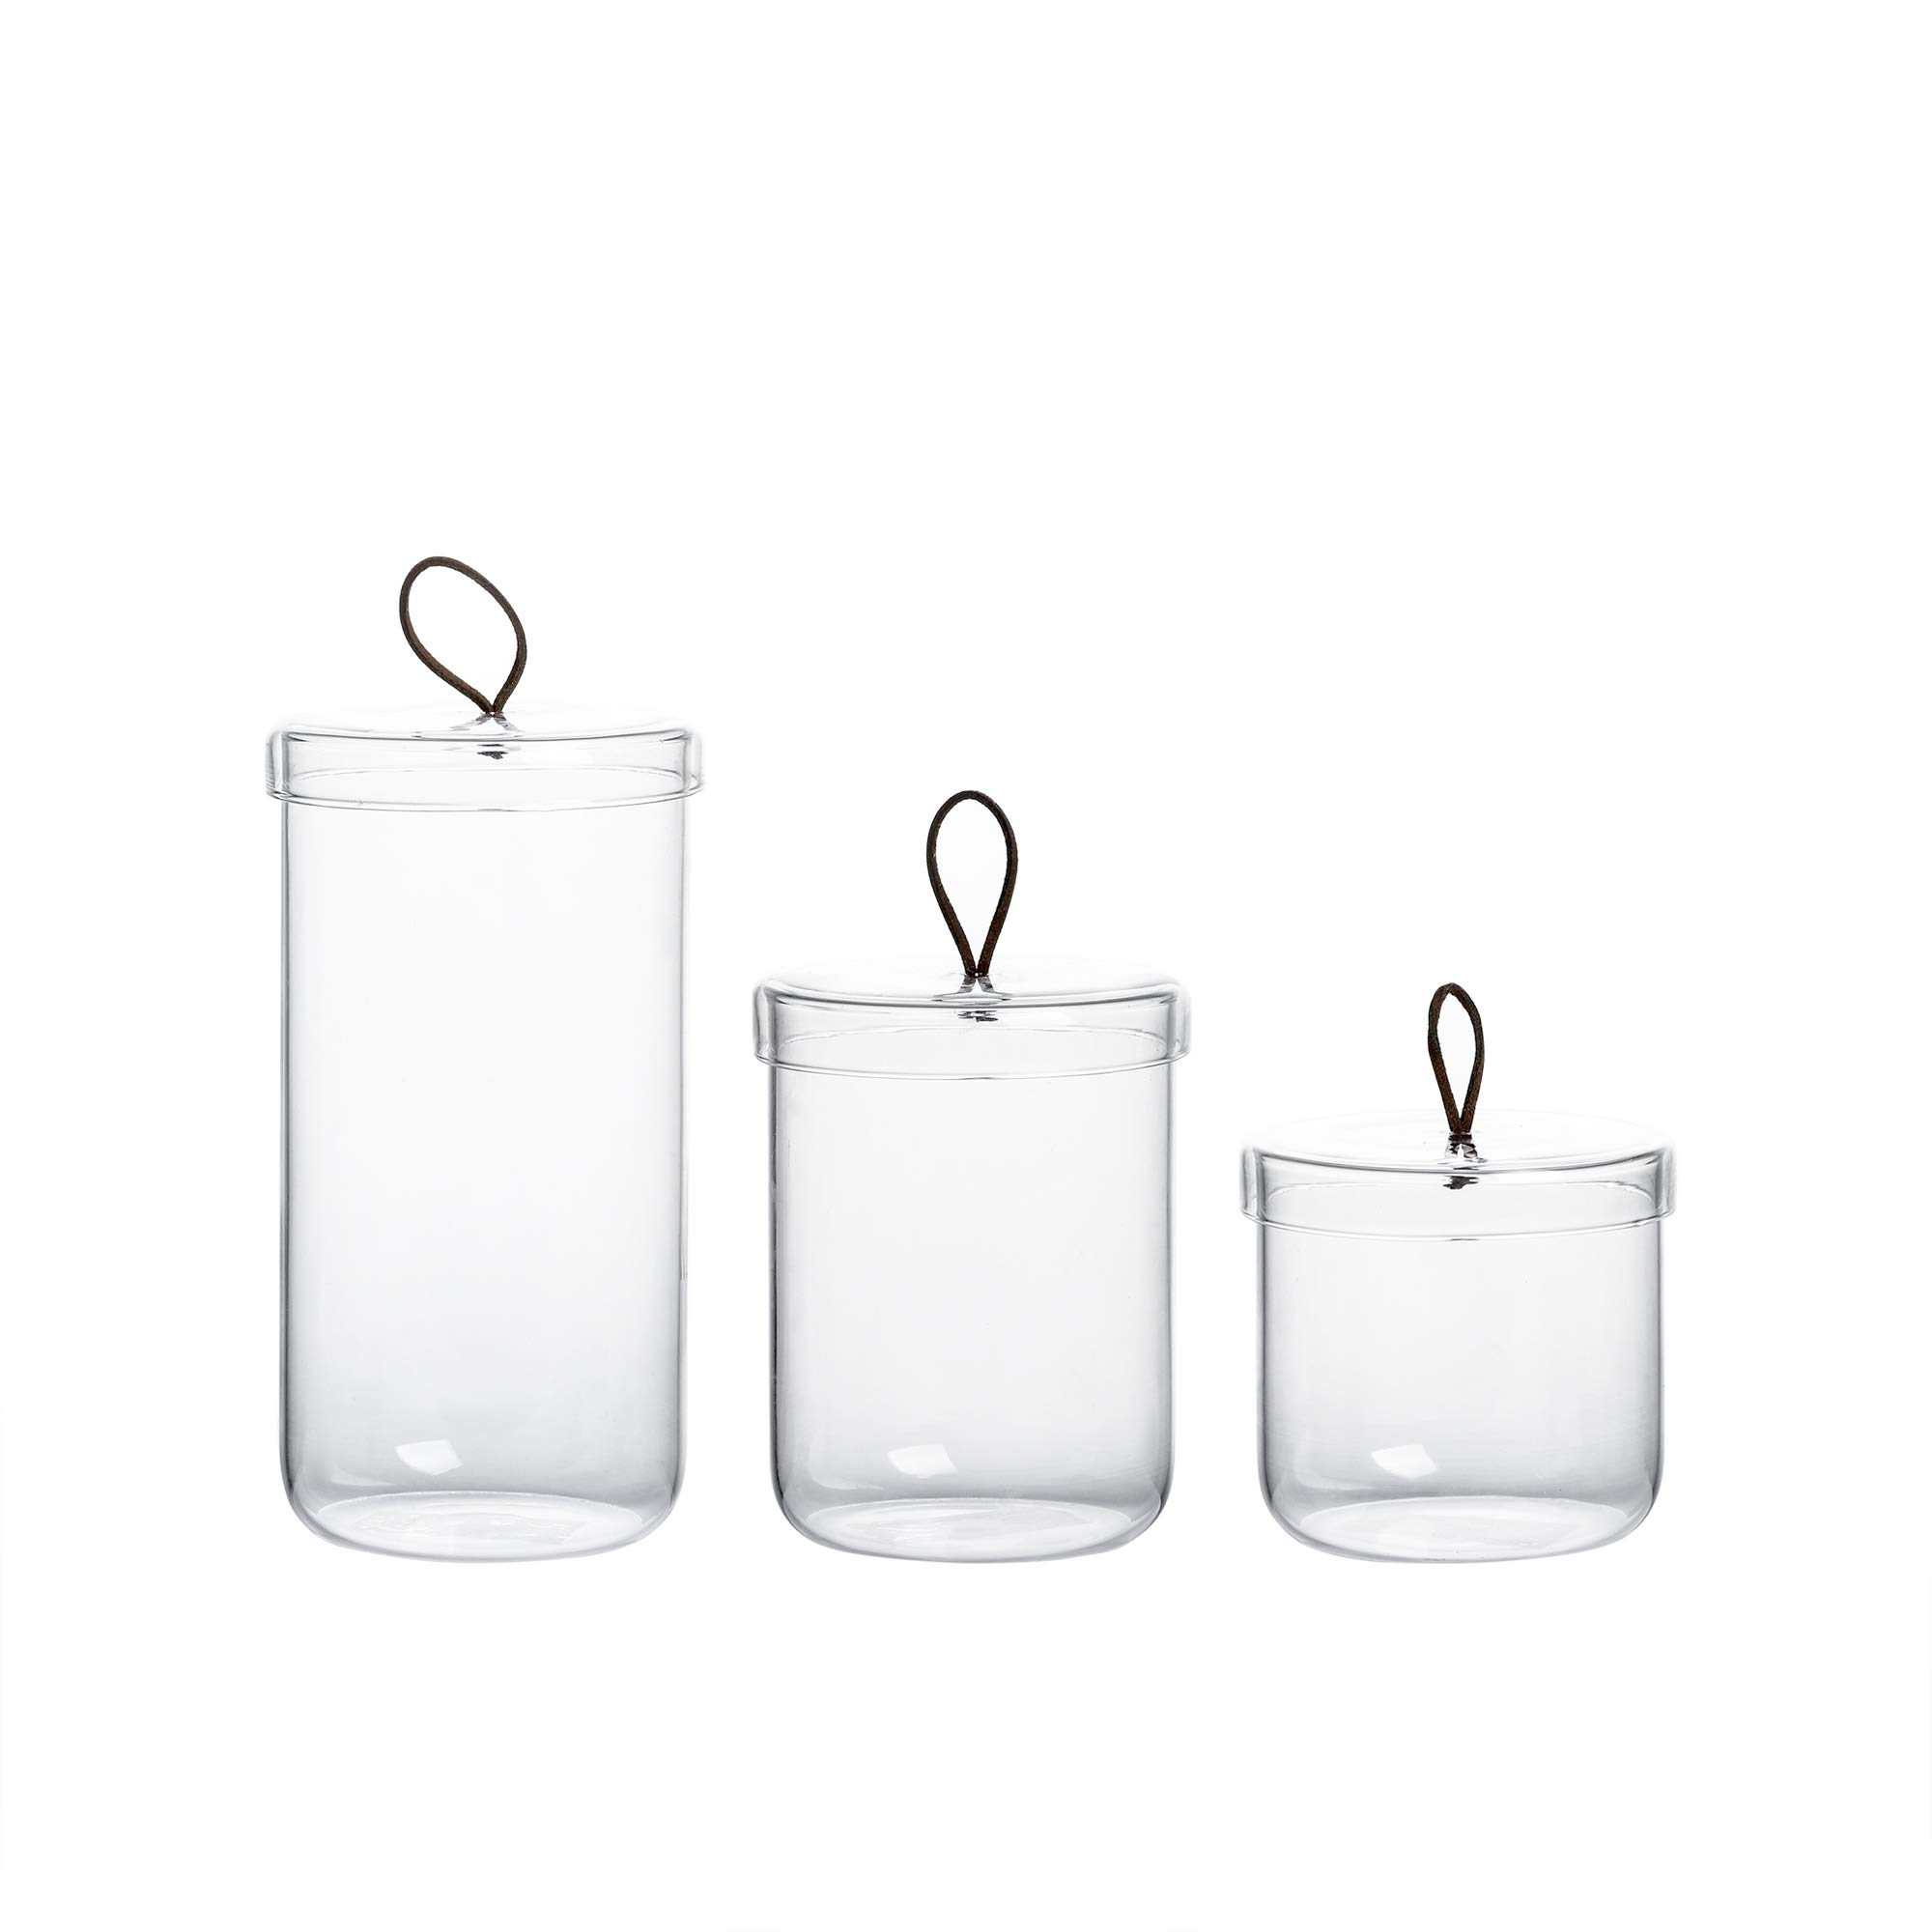 Glass Apothecary Jars-Cotton Jar-Bathroom Storage Canisters/Set of 3